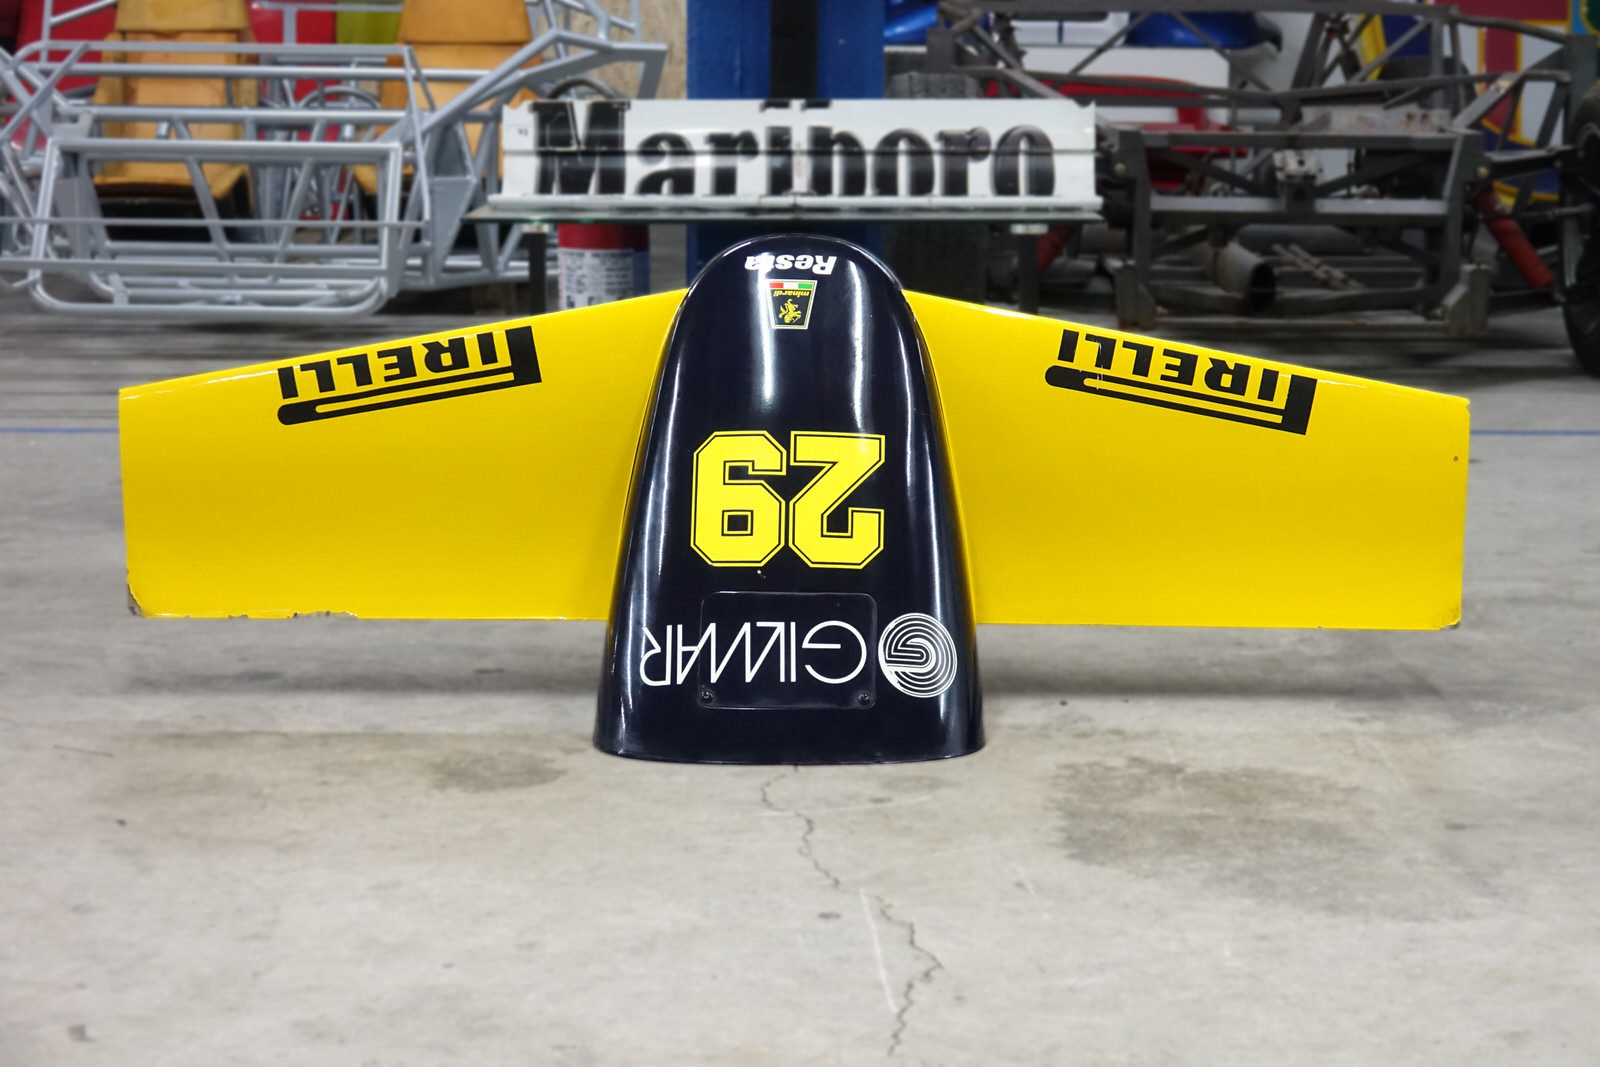 1985 Minardi M185 F1 Front Nose For Sale (picture 1 of 8)